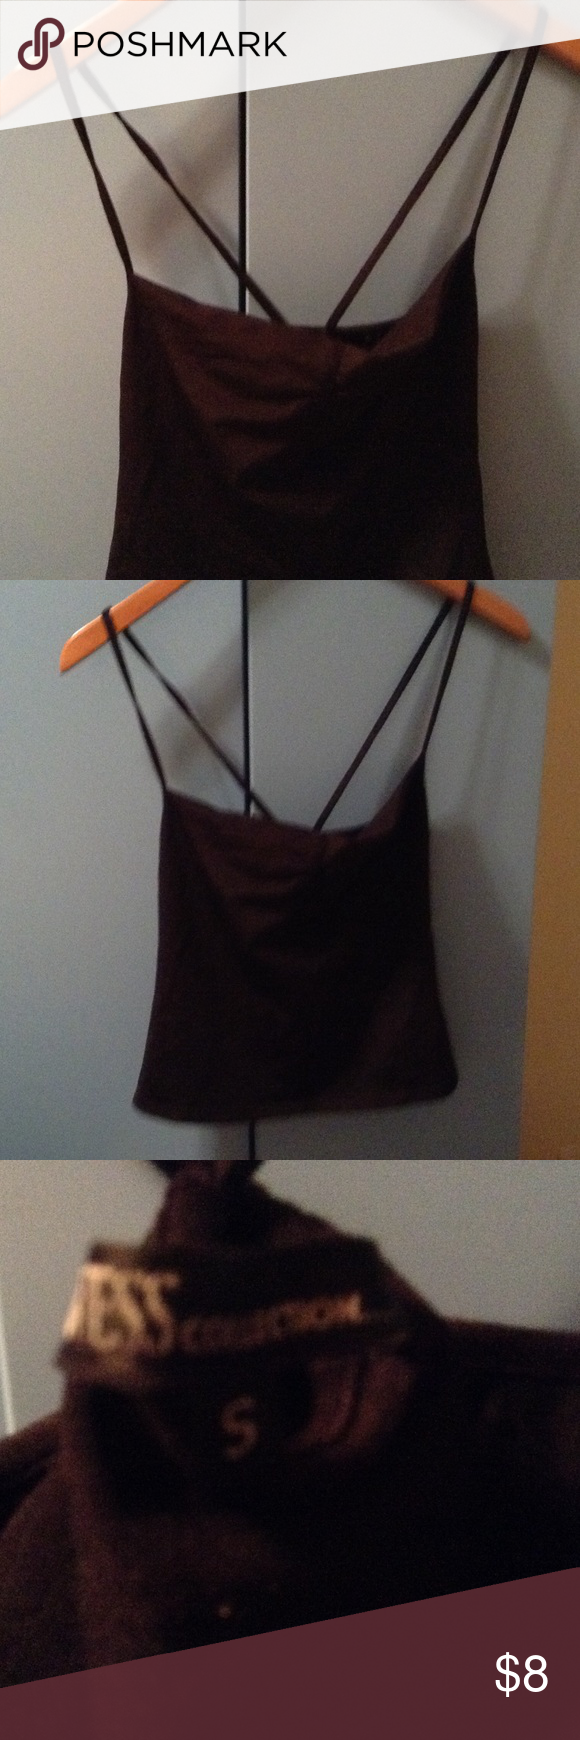 Guess Collection black top Crisis cross back Guess Collection Tops Camisoles